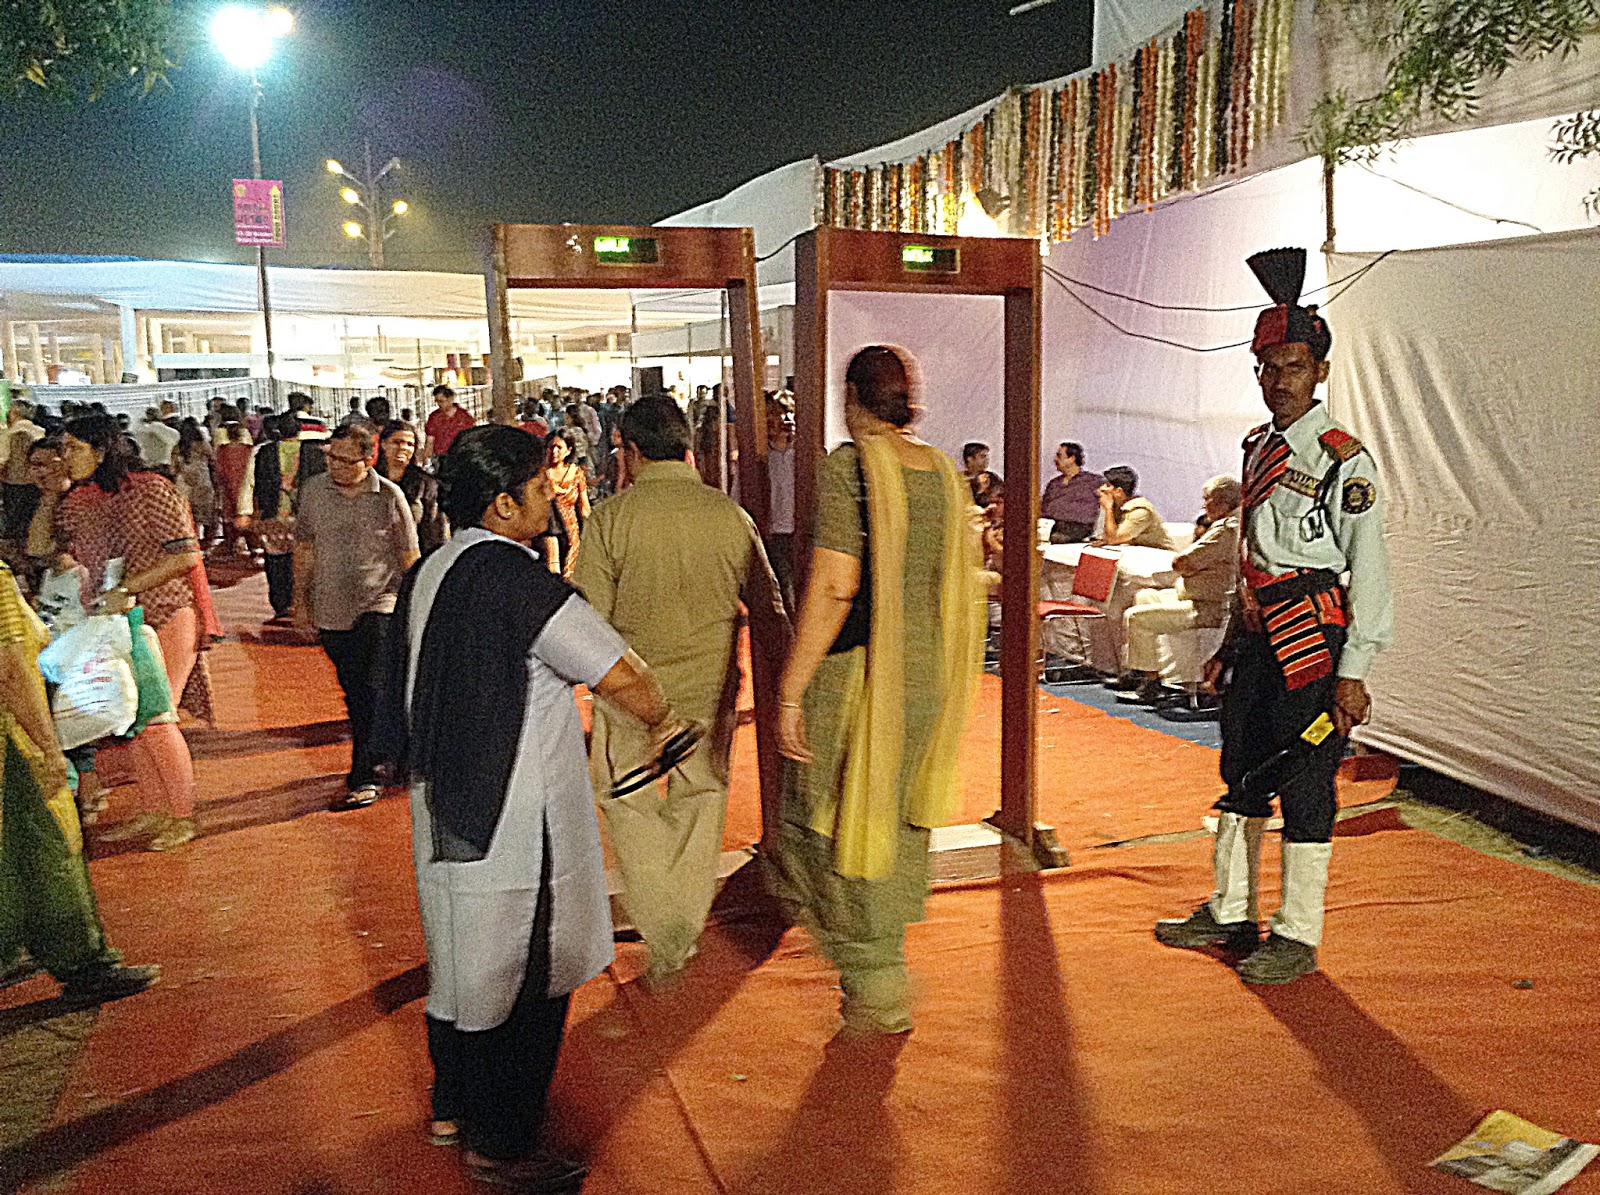 Security arrangements at the entrance for Deep Utsav, Noida